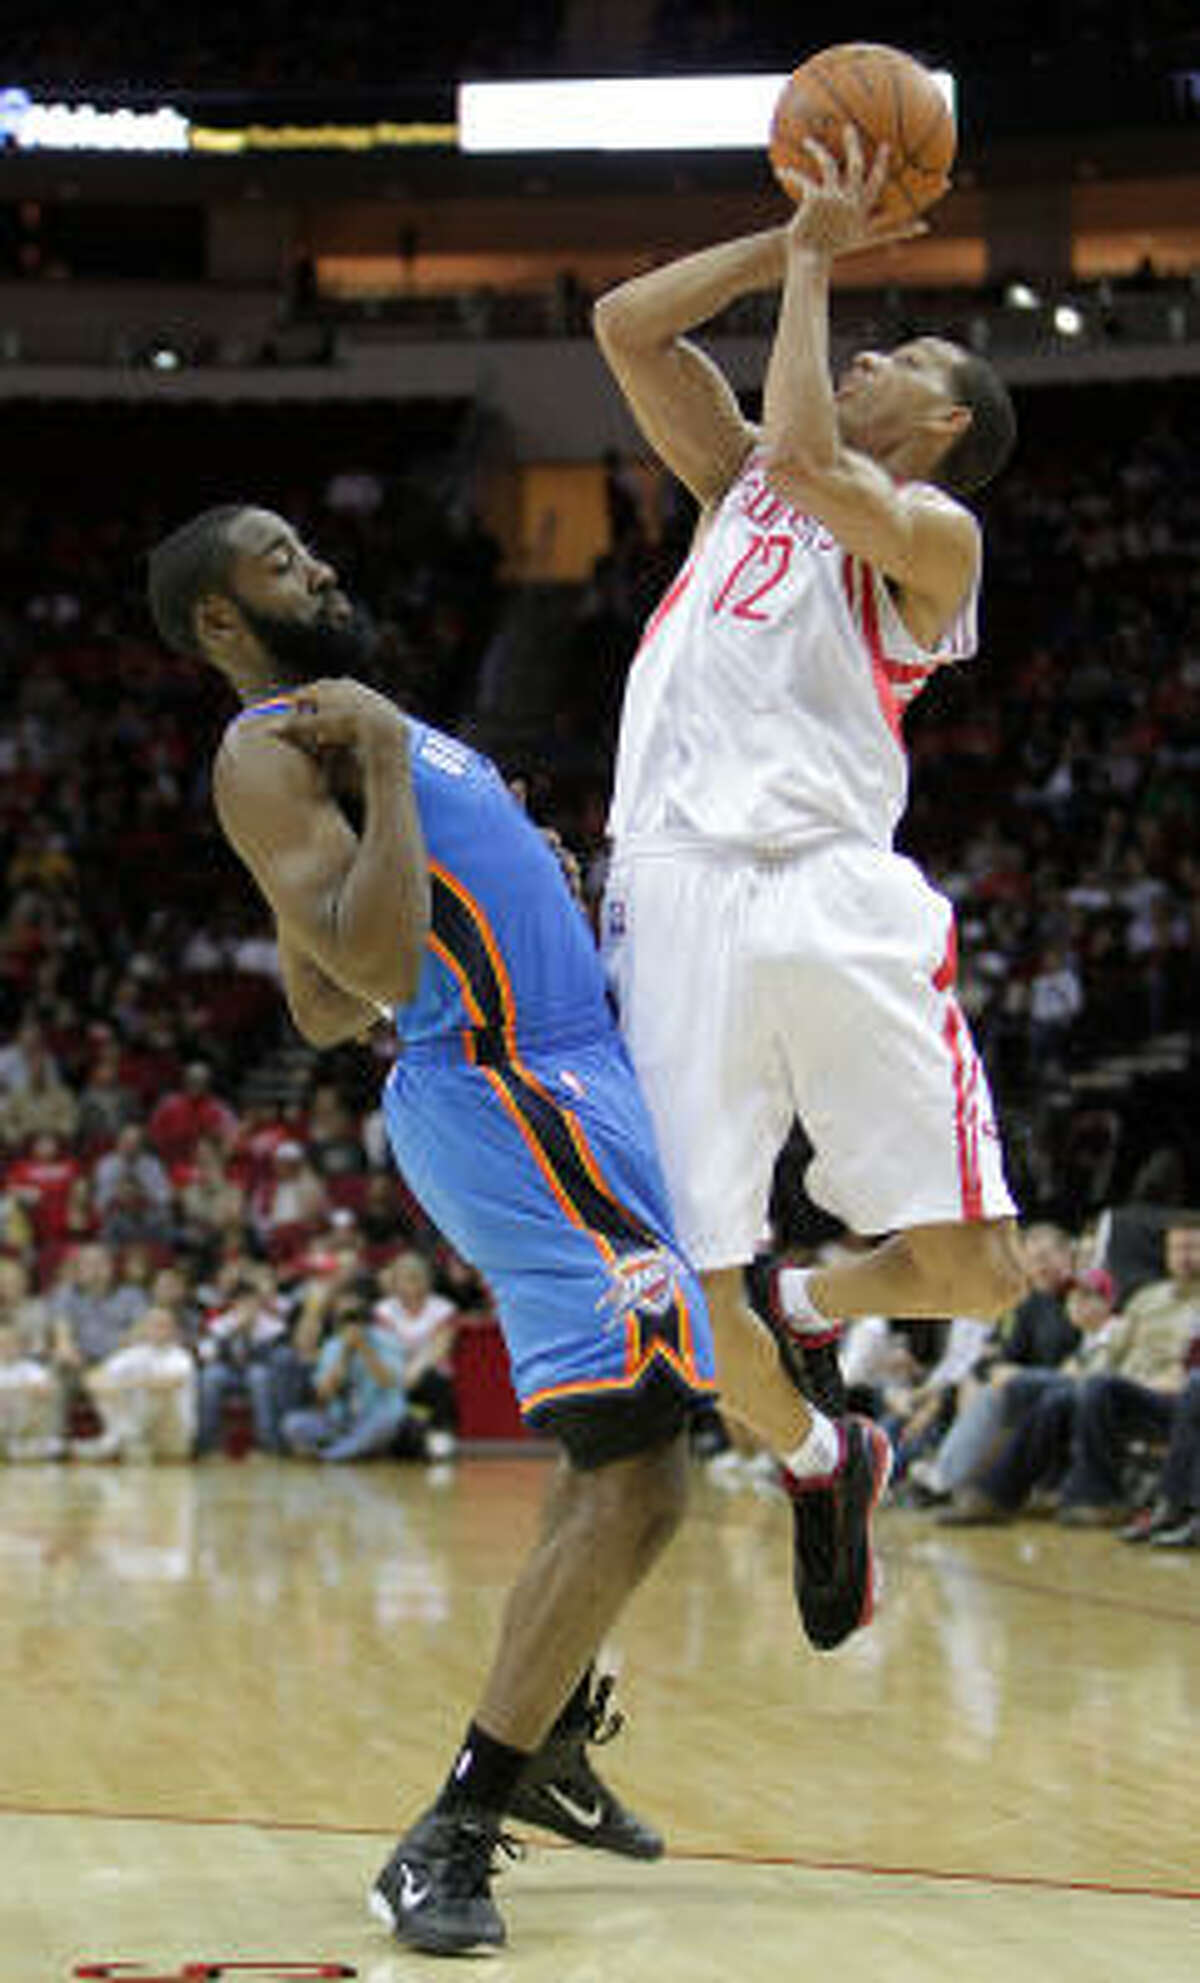 Thunder guard James Harden faces Rockets guard Kevin Martin.